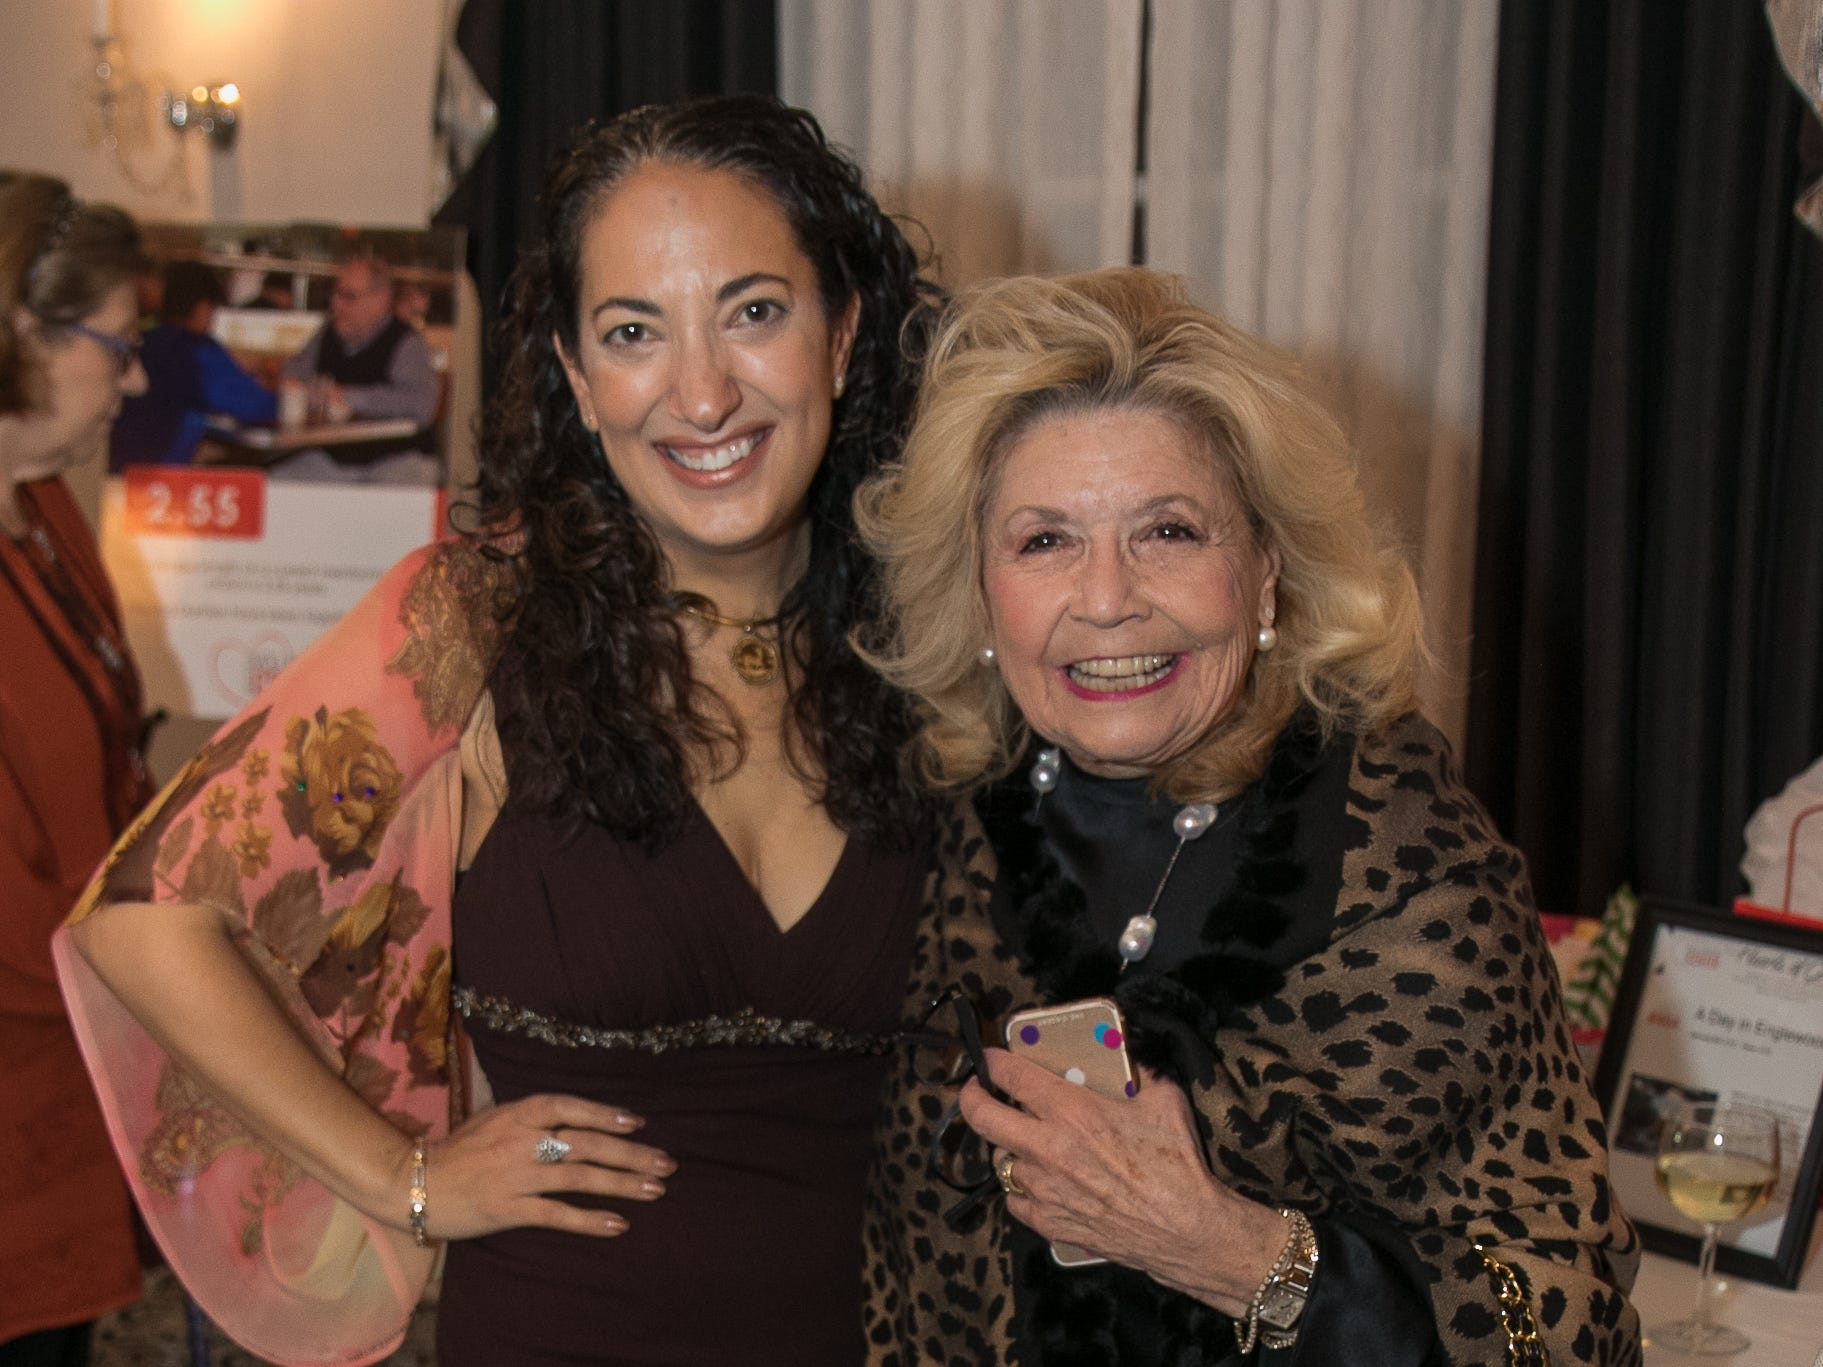 Maria Repole, Felicia Leleibman. The Bergen Volunteer Center celebrated its 10th anniversary of the Bergen LEADS program at The Hearts of Gold Dinner and Auction at the Stony Hill Inn in Hackensack. 11/08/2018